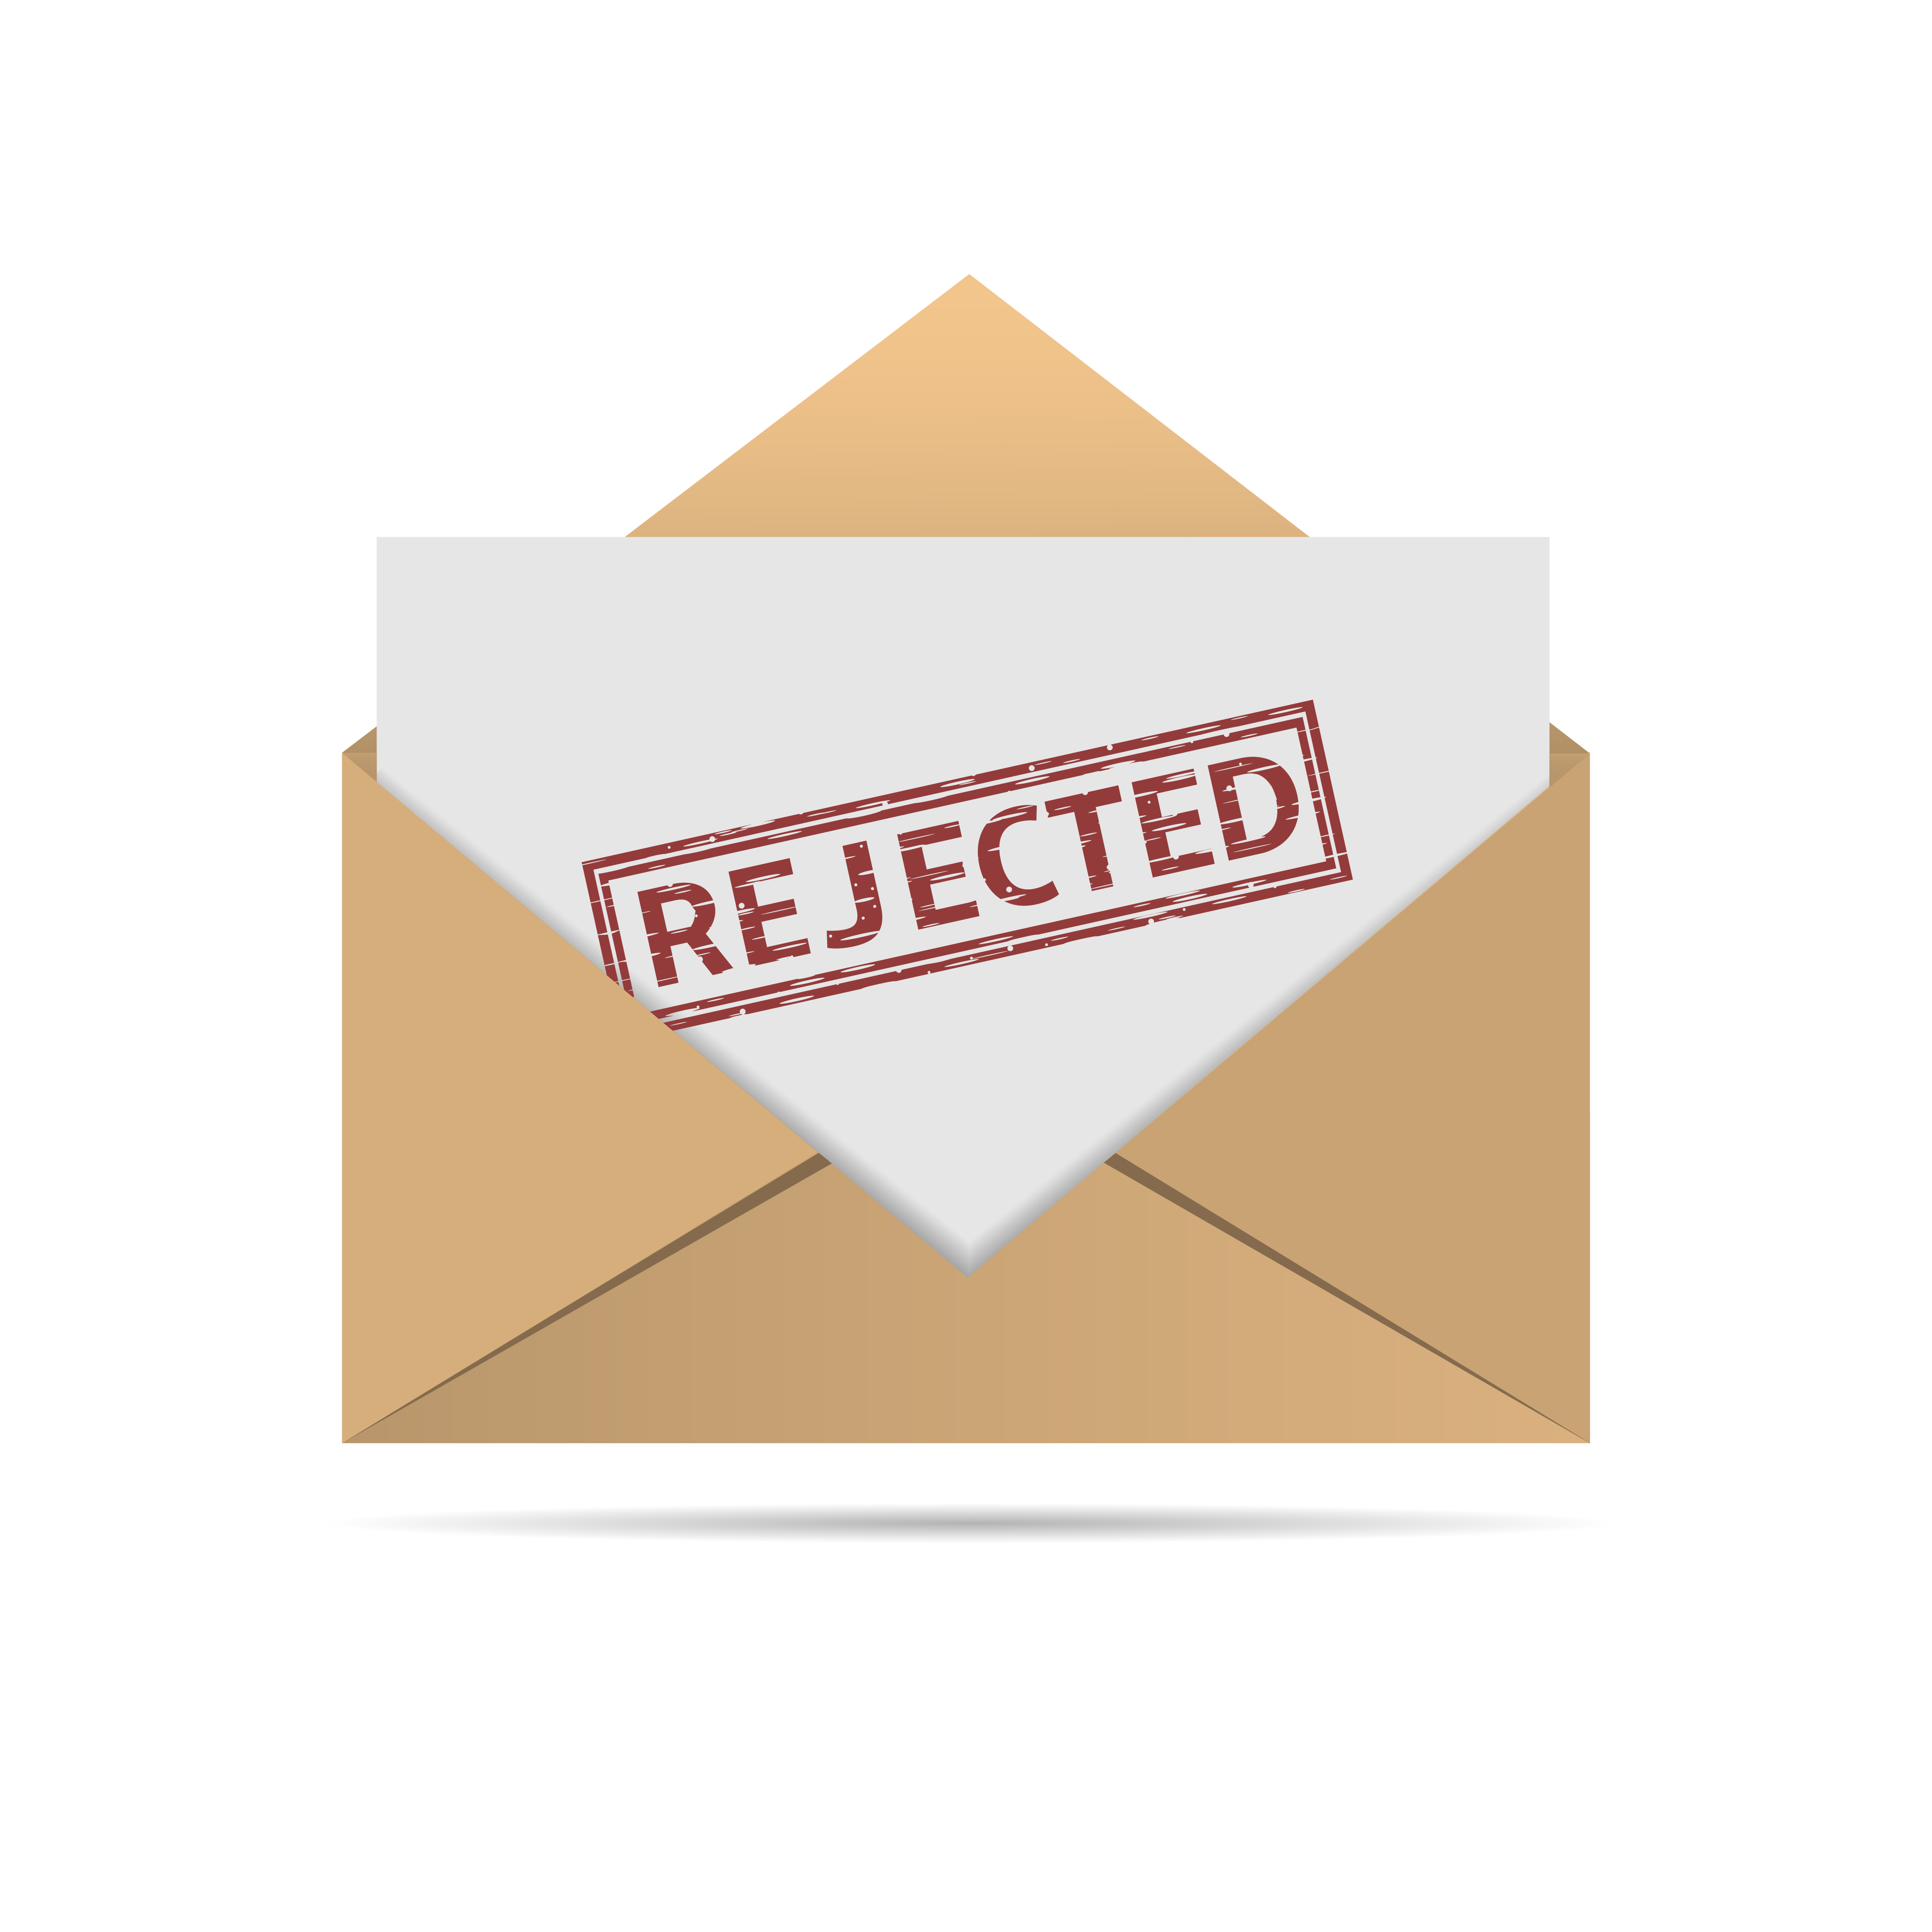 Advice for writing thoughtful rejection letters (essay)